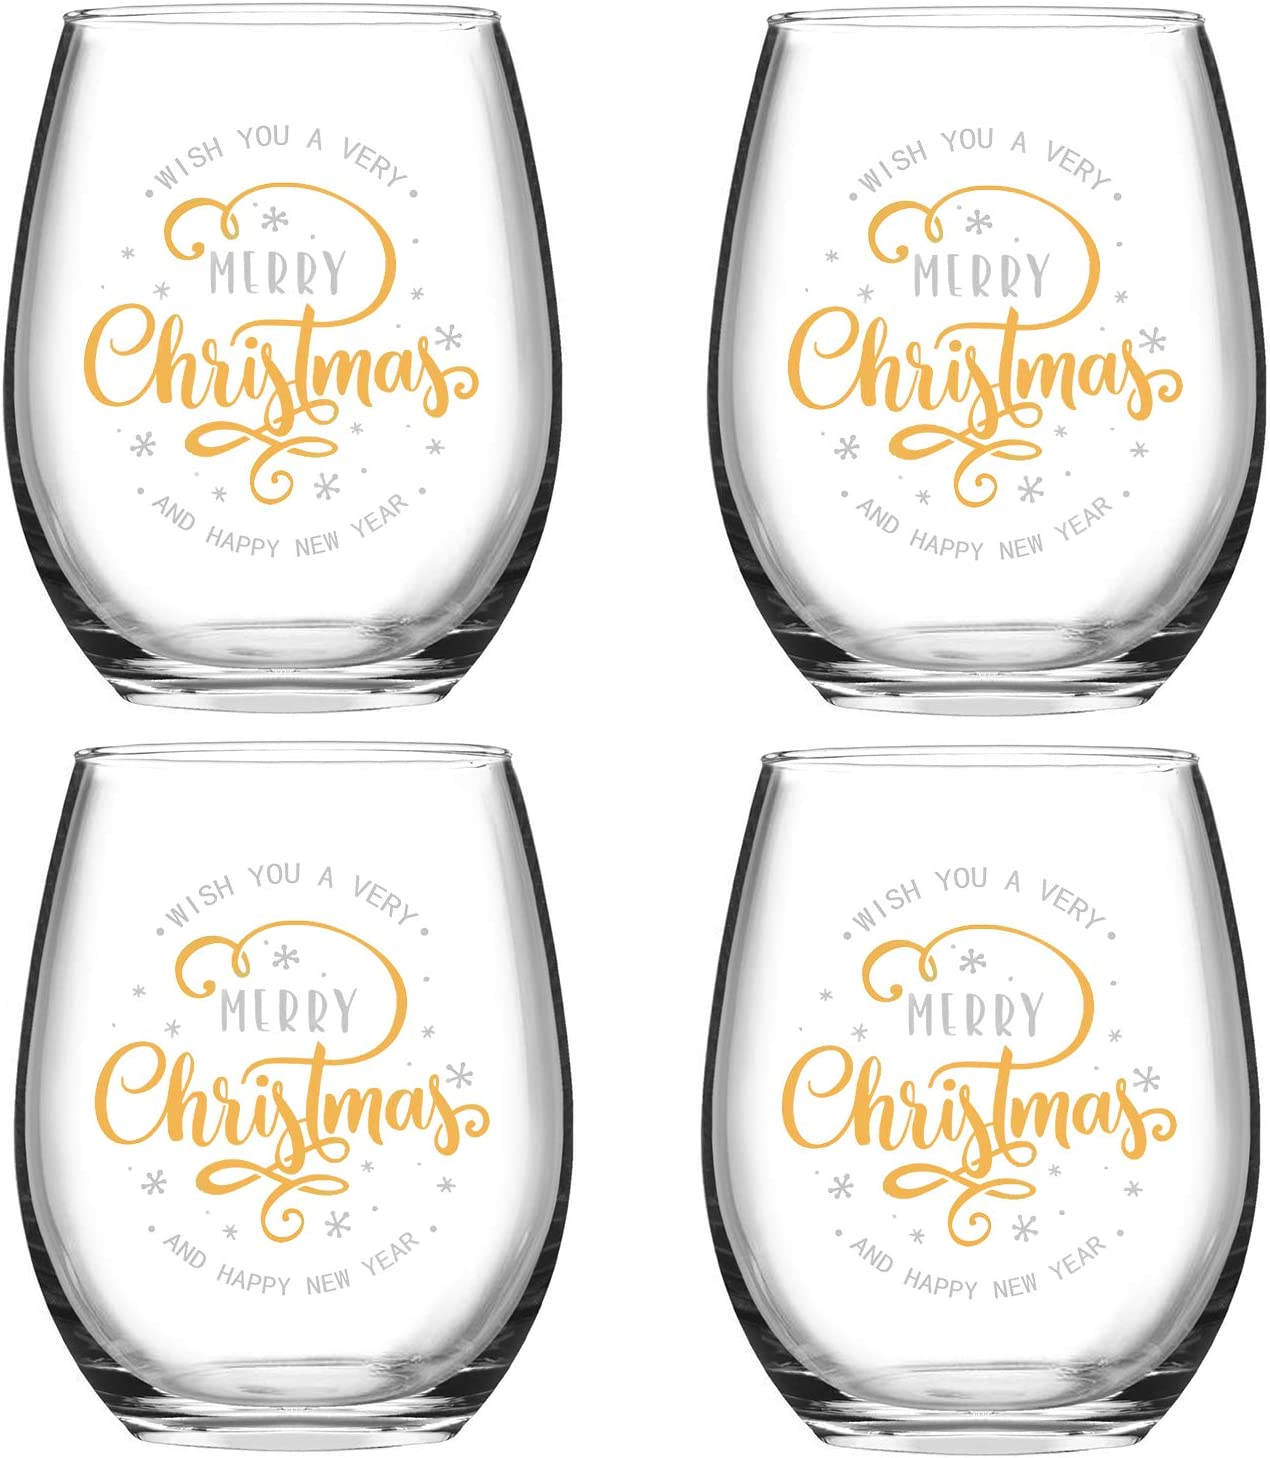 Wish You A Merry Christmas and Happy New Year Stemless Wine Glass Set, Stemless Wine Glasses for Women Friends Men Christmas Wedding Party, Set of 4